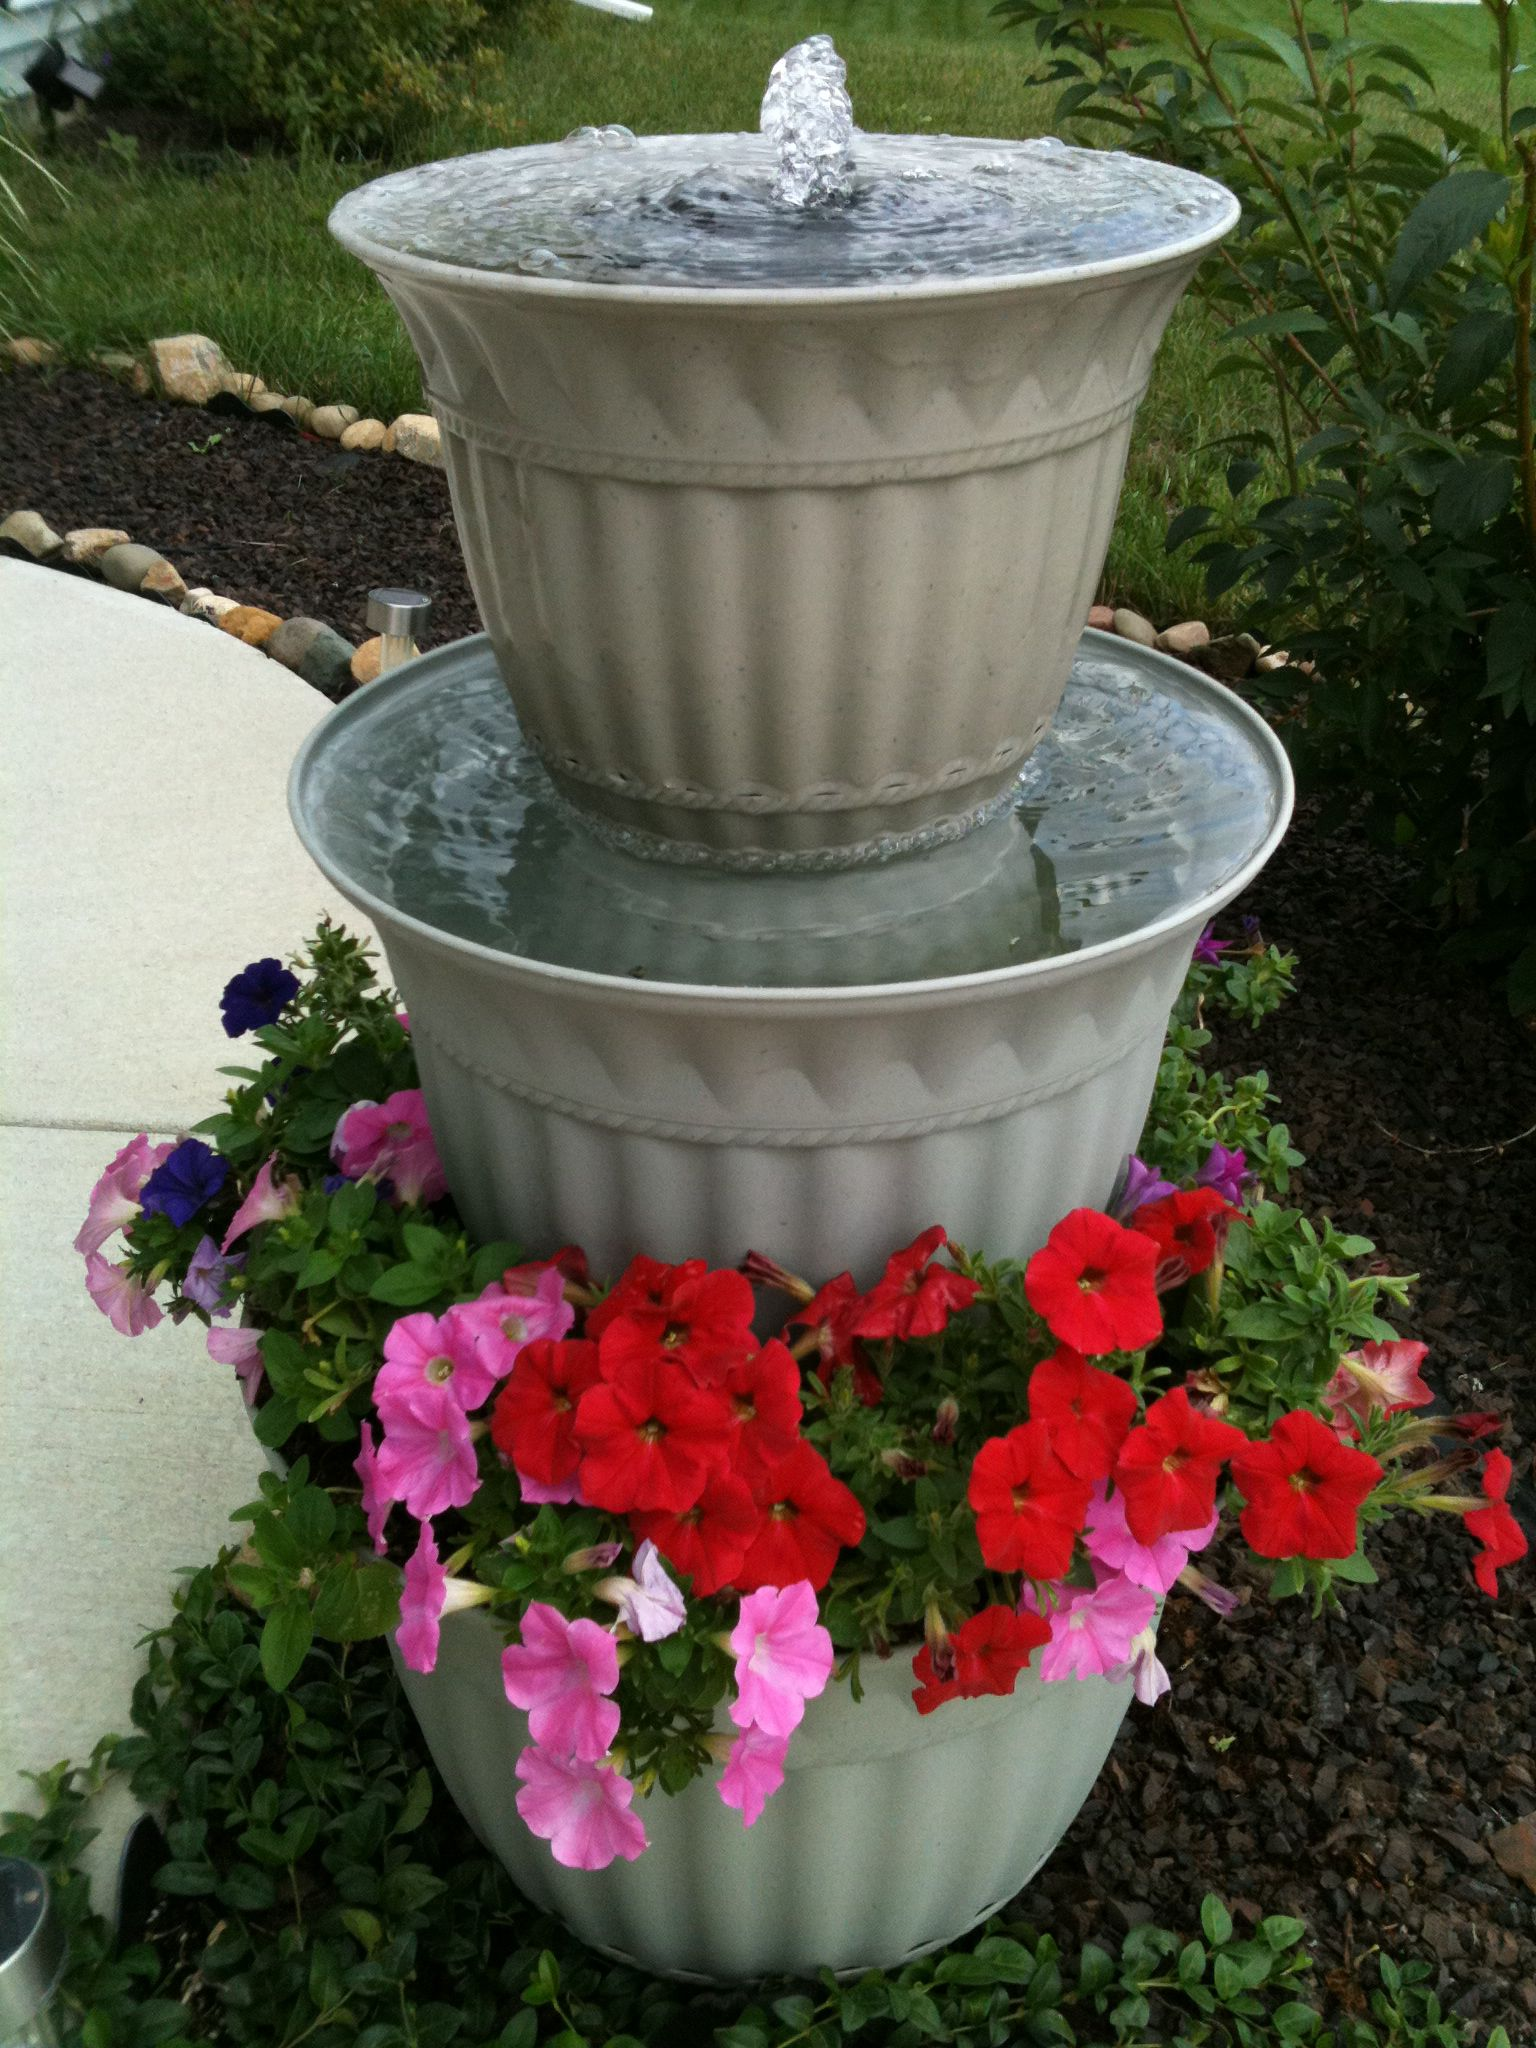 Homemade Fountain I Made From Plastic Planters Garden Water Fountains Diy Water Fountain Diy Garden Fountains